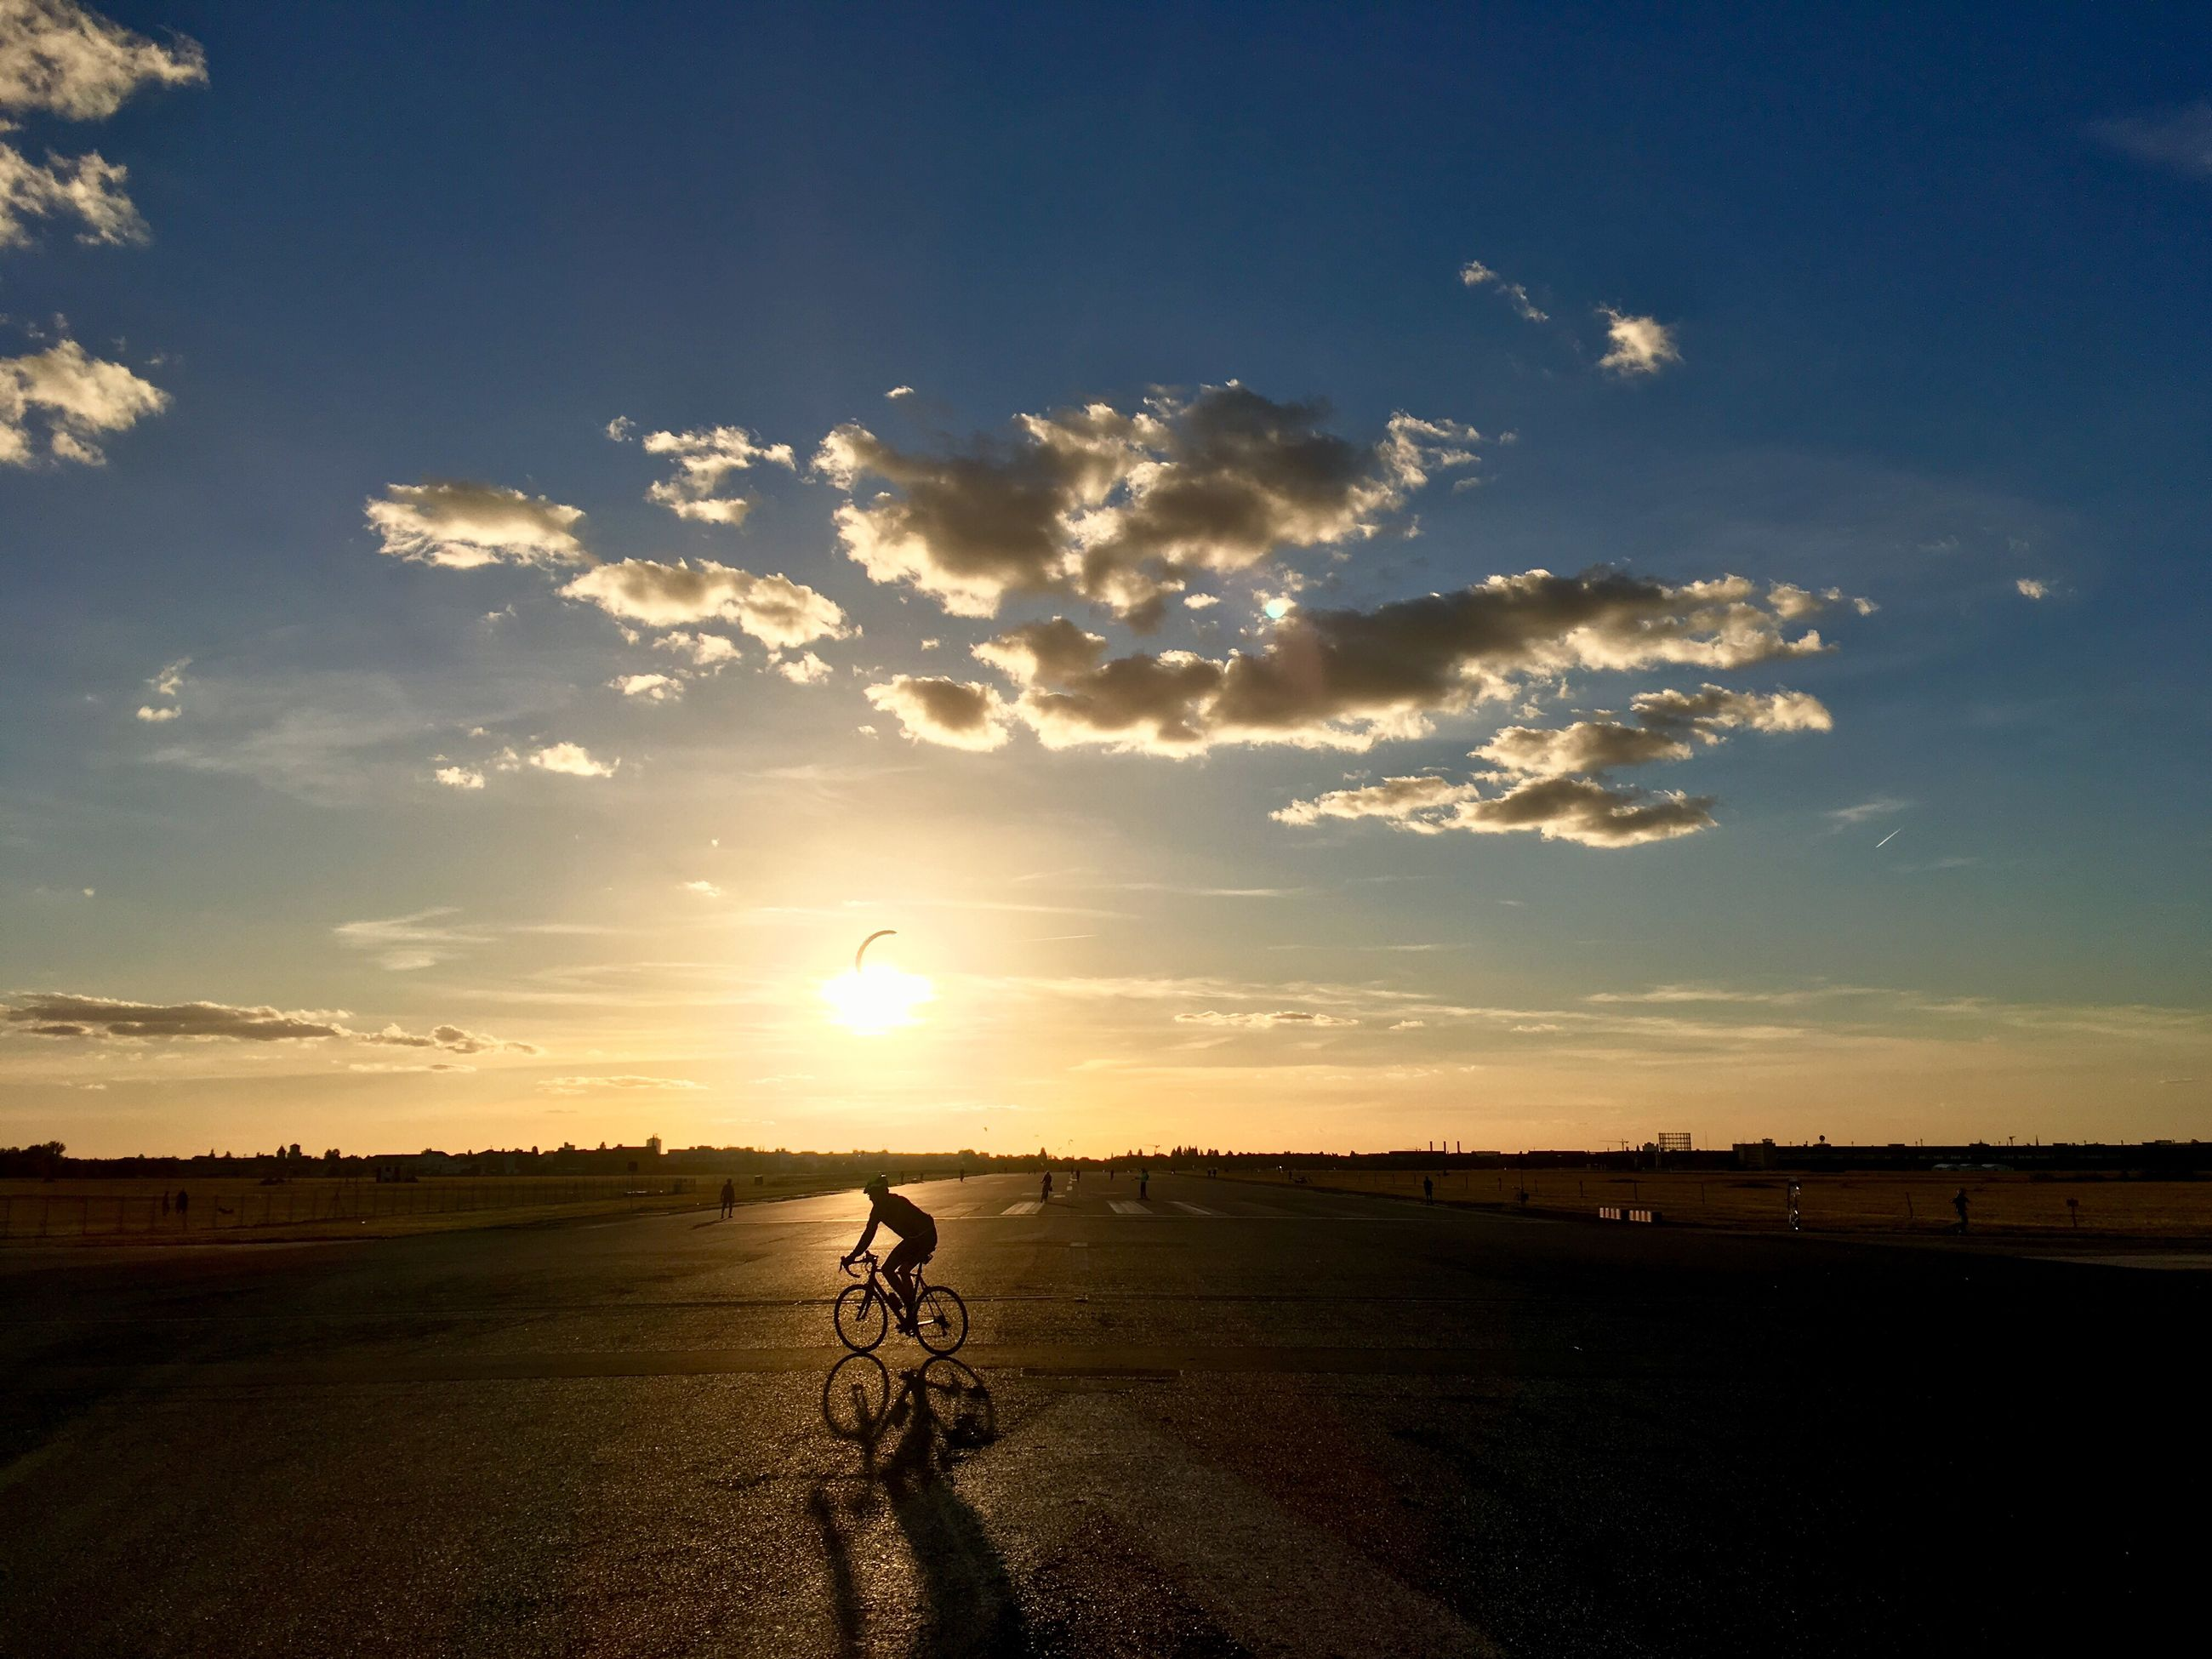 sky, sunset, cloud - sky, landscape, beauty in nature, land, real people, field, lifestyles, nature, environment, leisure activity, scenics - nature, bicycle, transportation, one person, riding, ride, sunlight, outdoors, sun